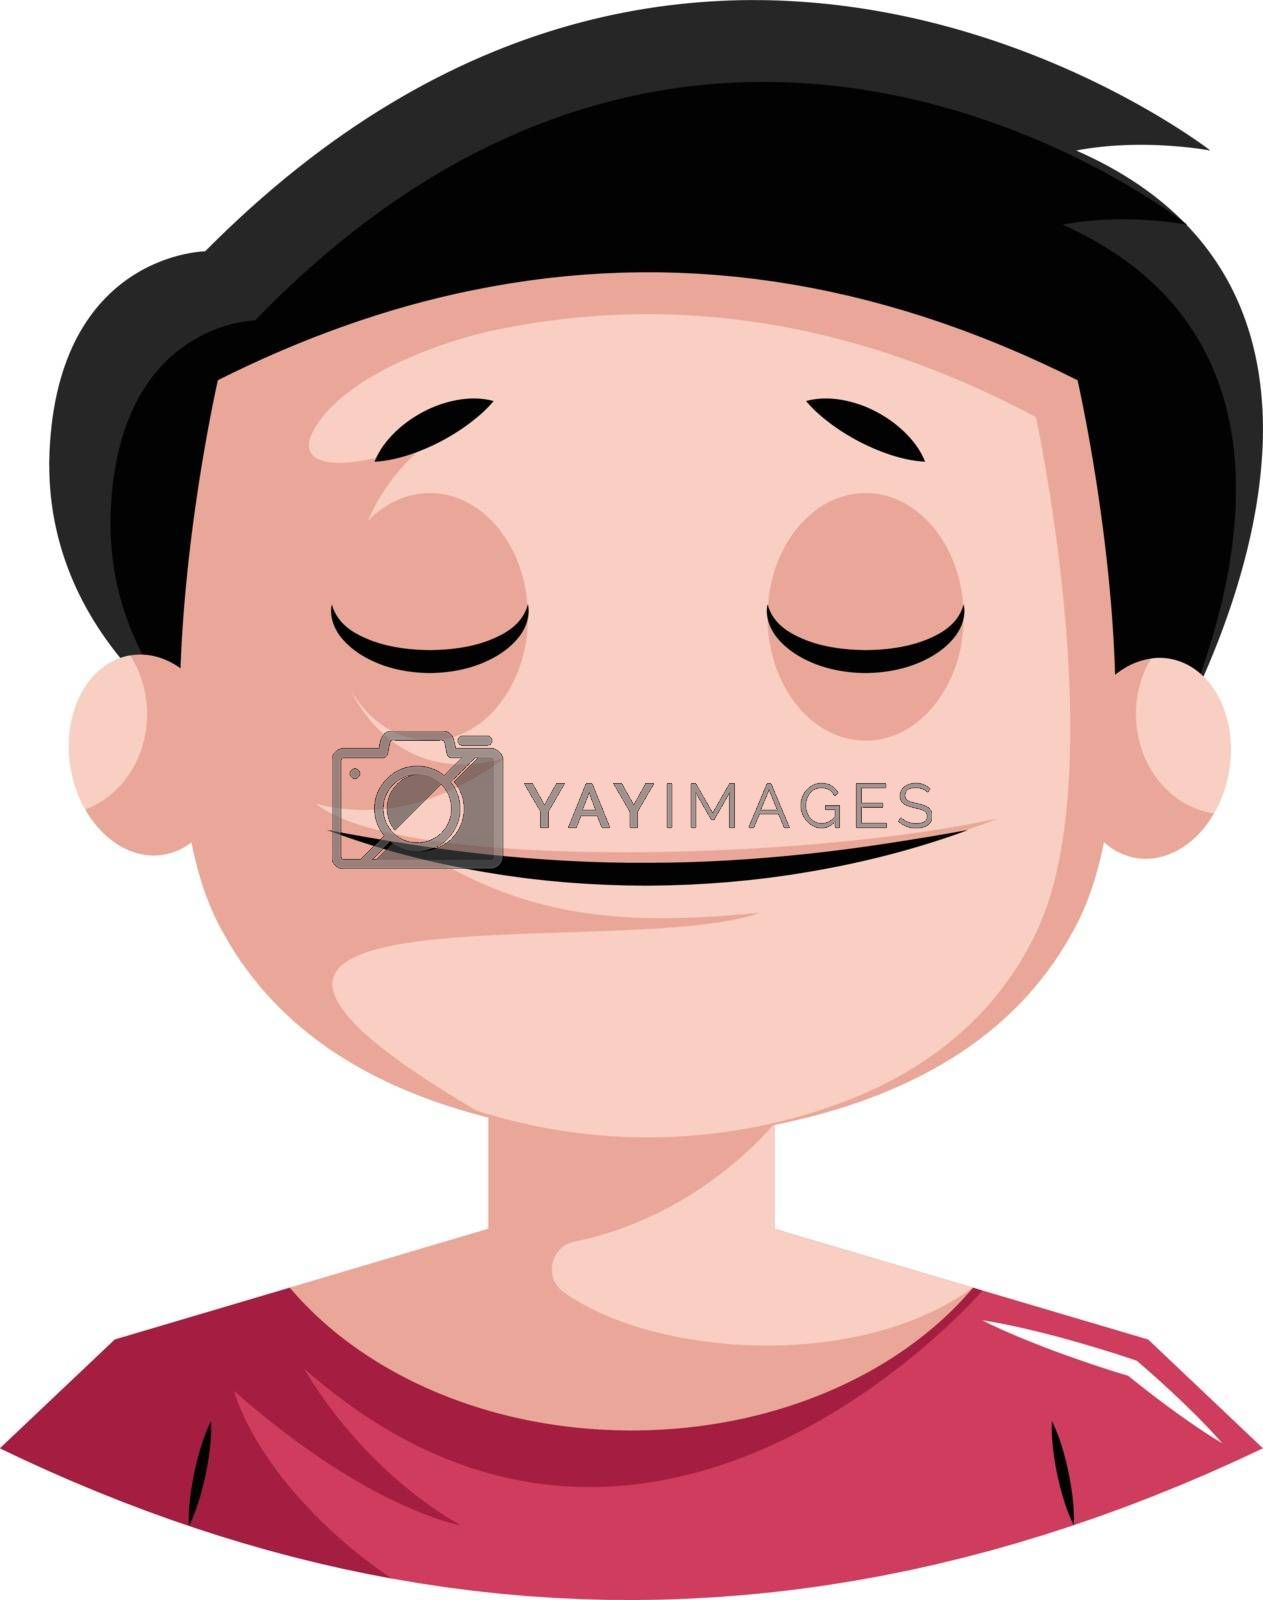 Royalty free image of Very peaceful looking man illustration vector on white backgroun by Morphart